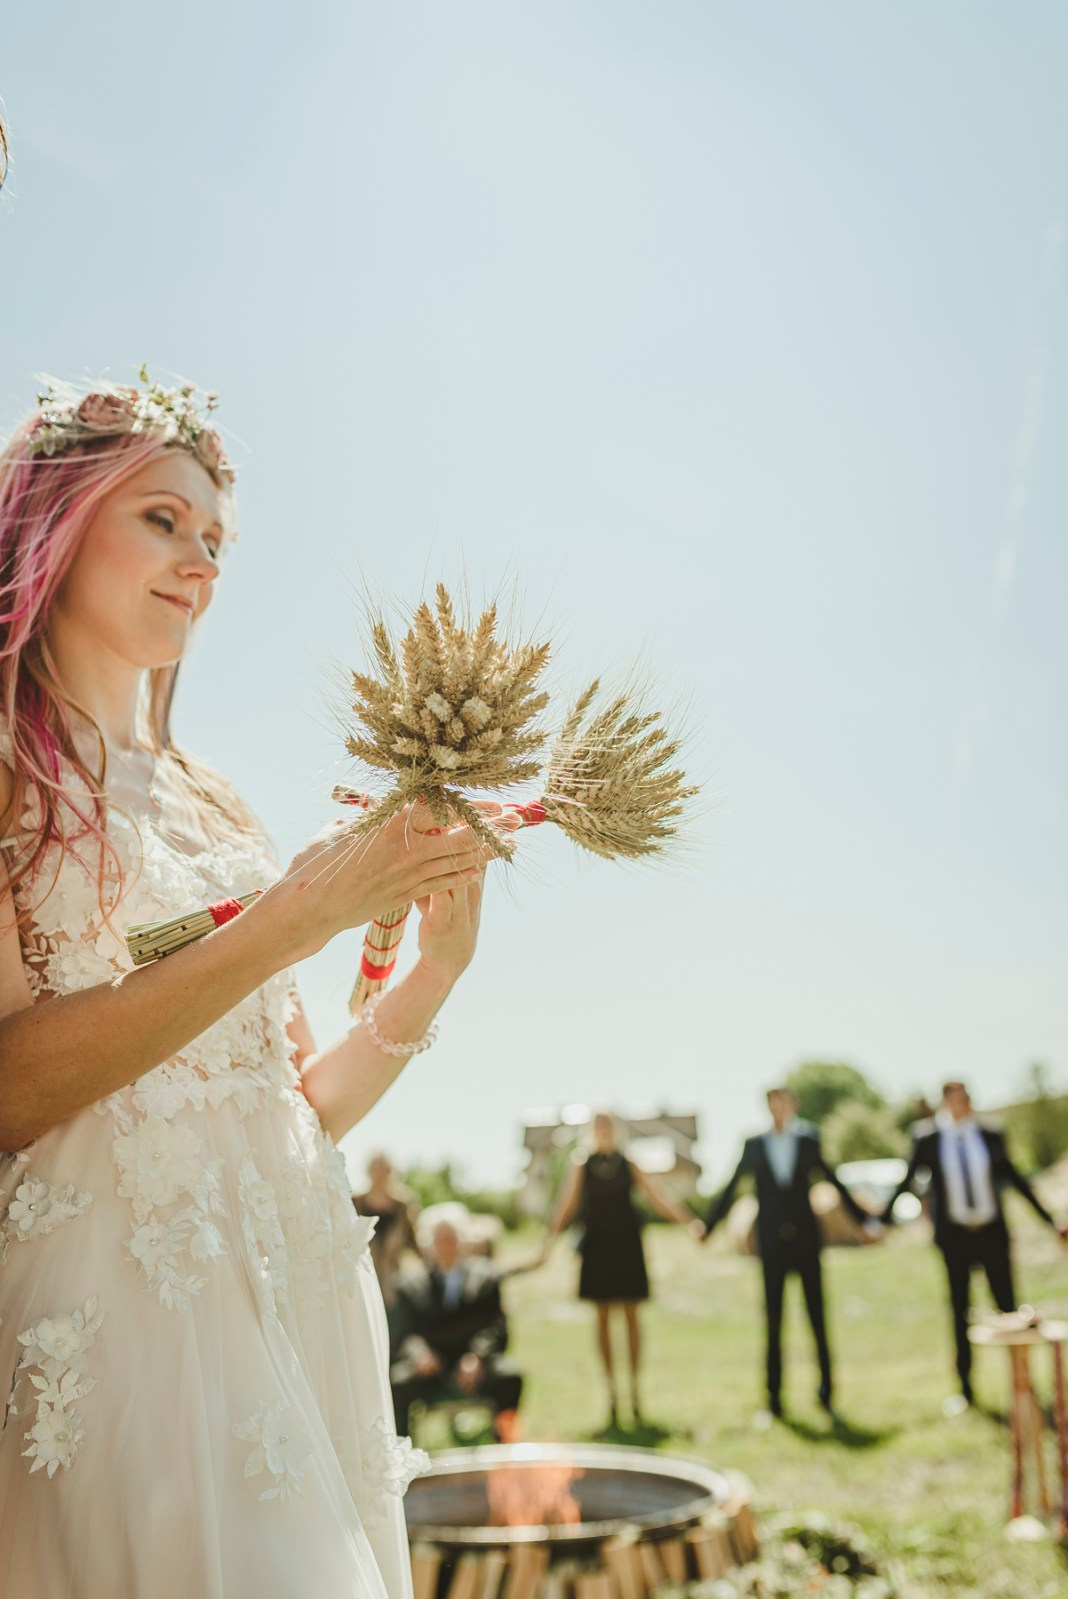 latvian traditional wedding ritual in nīcgale